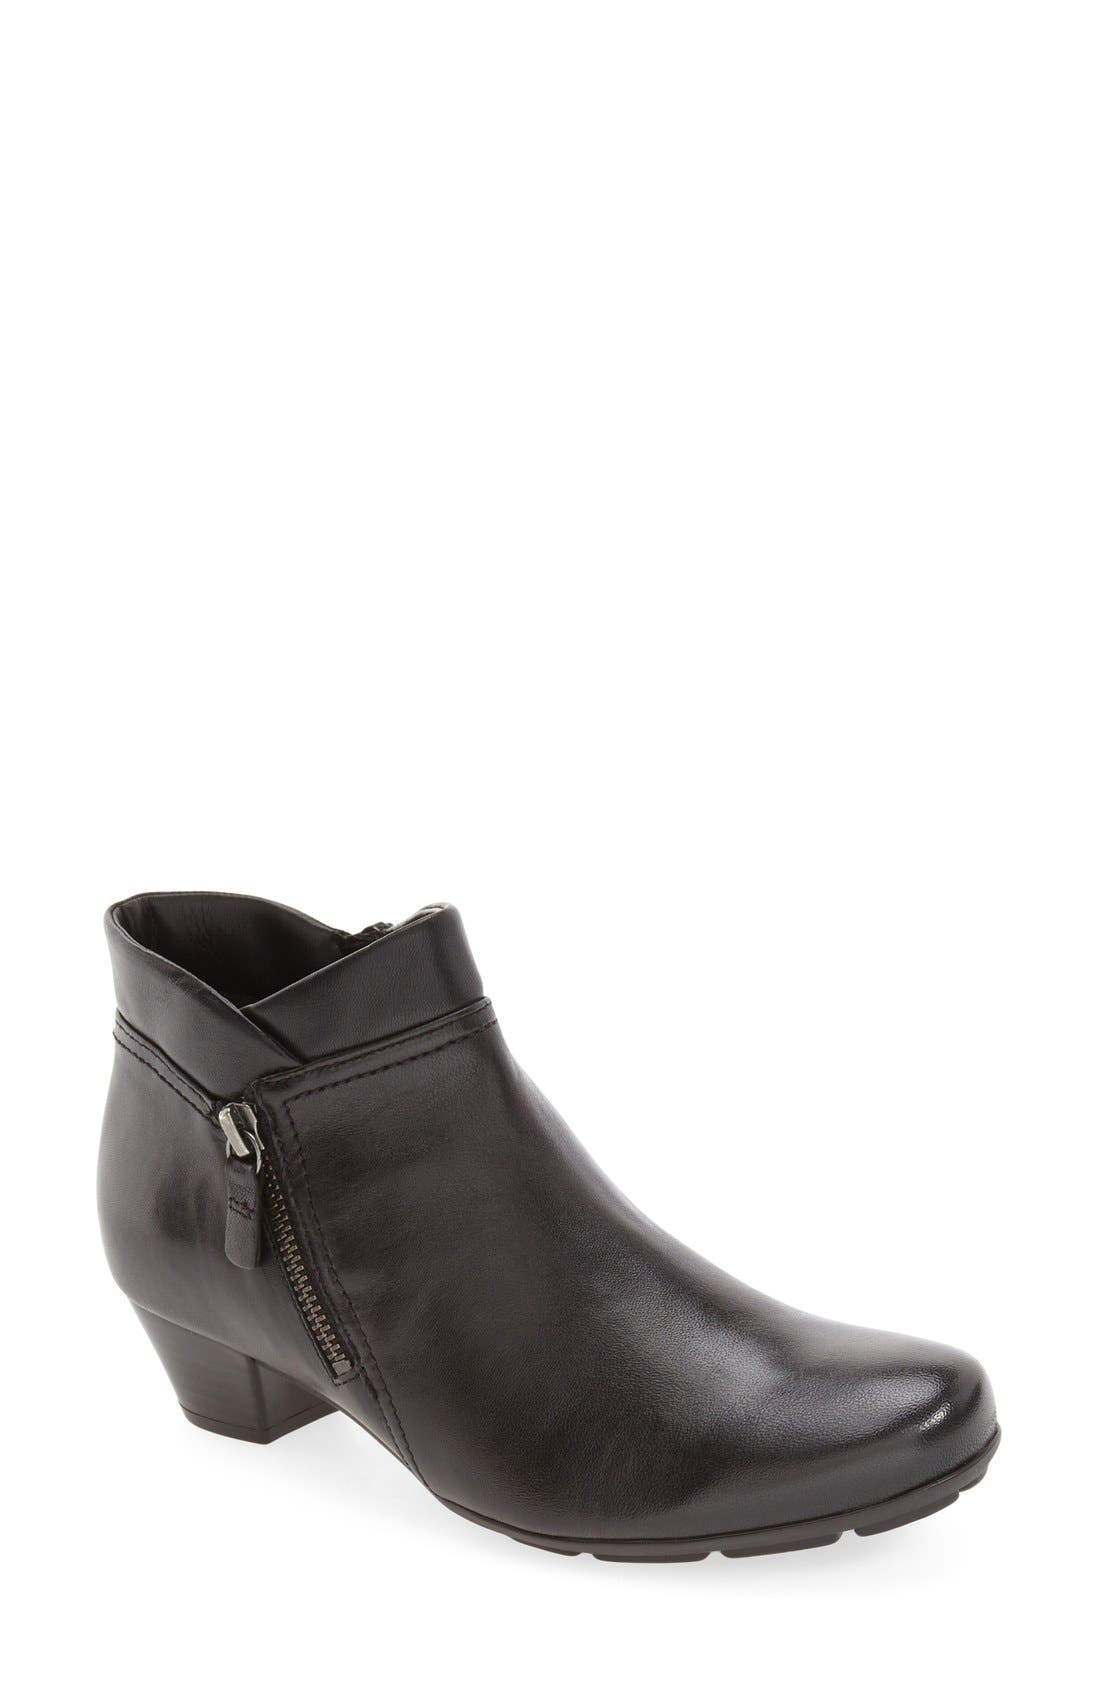 Main Image - Gabor Ankle Bootie (Women)